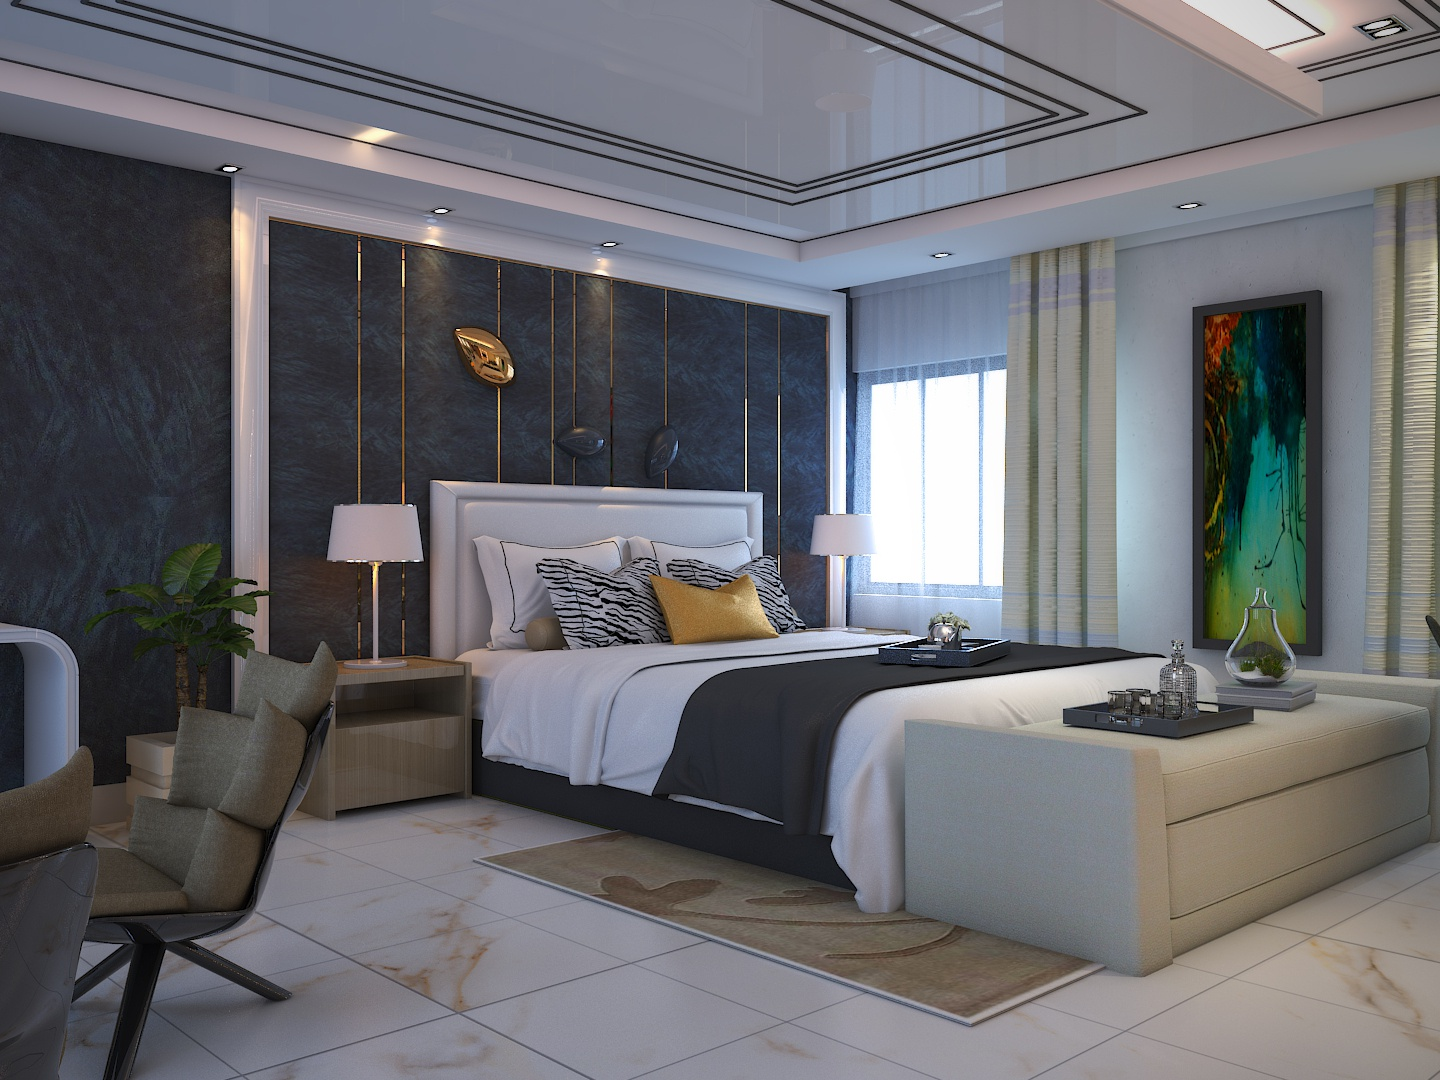 Modern Master Bed Room By Makfubar Rahman On Dribbble